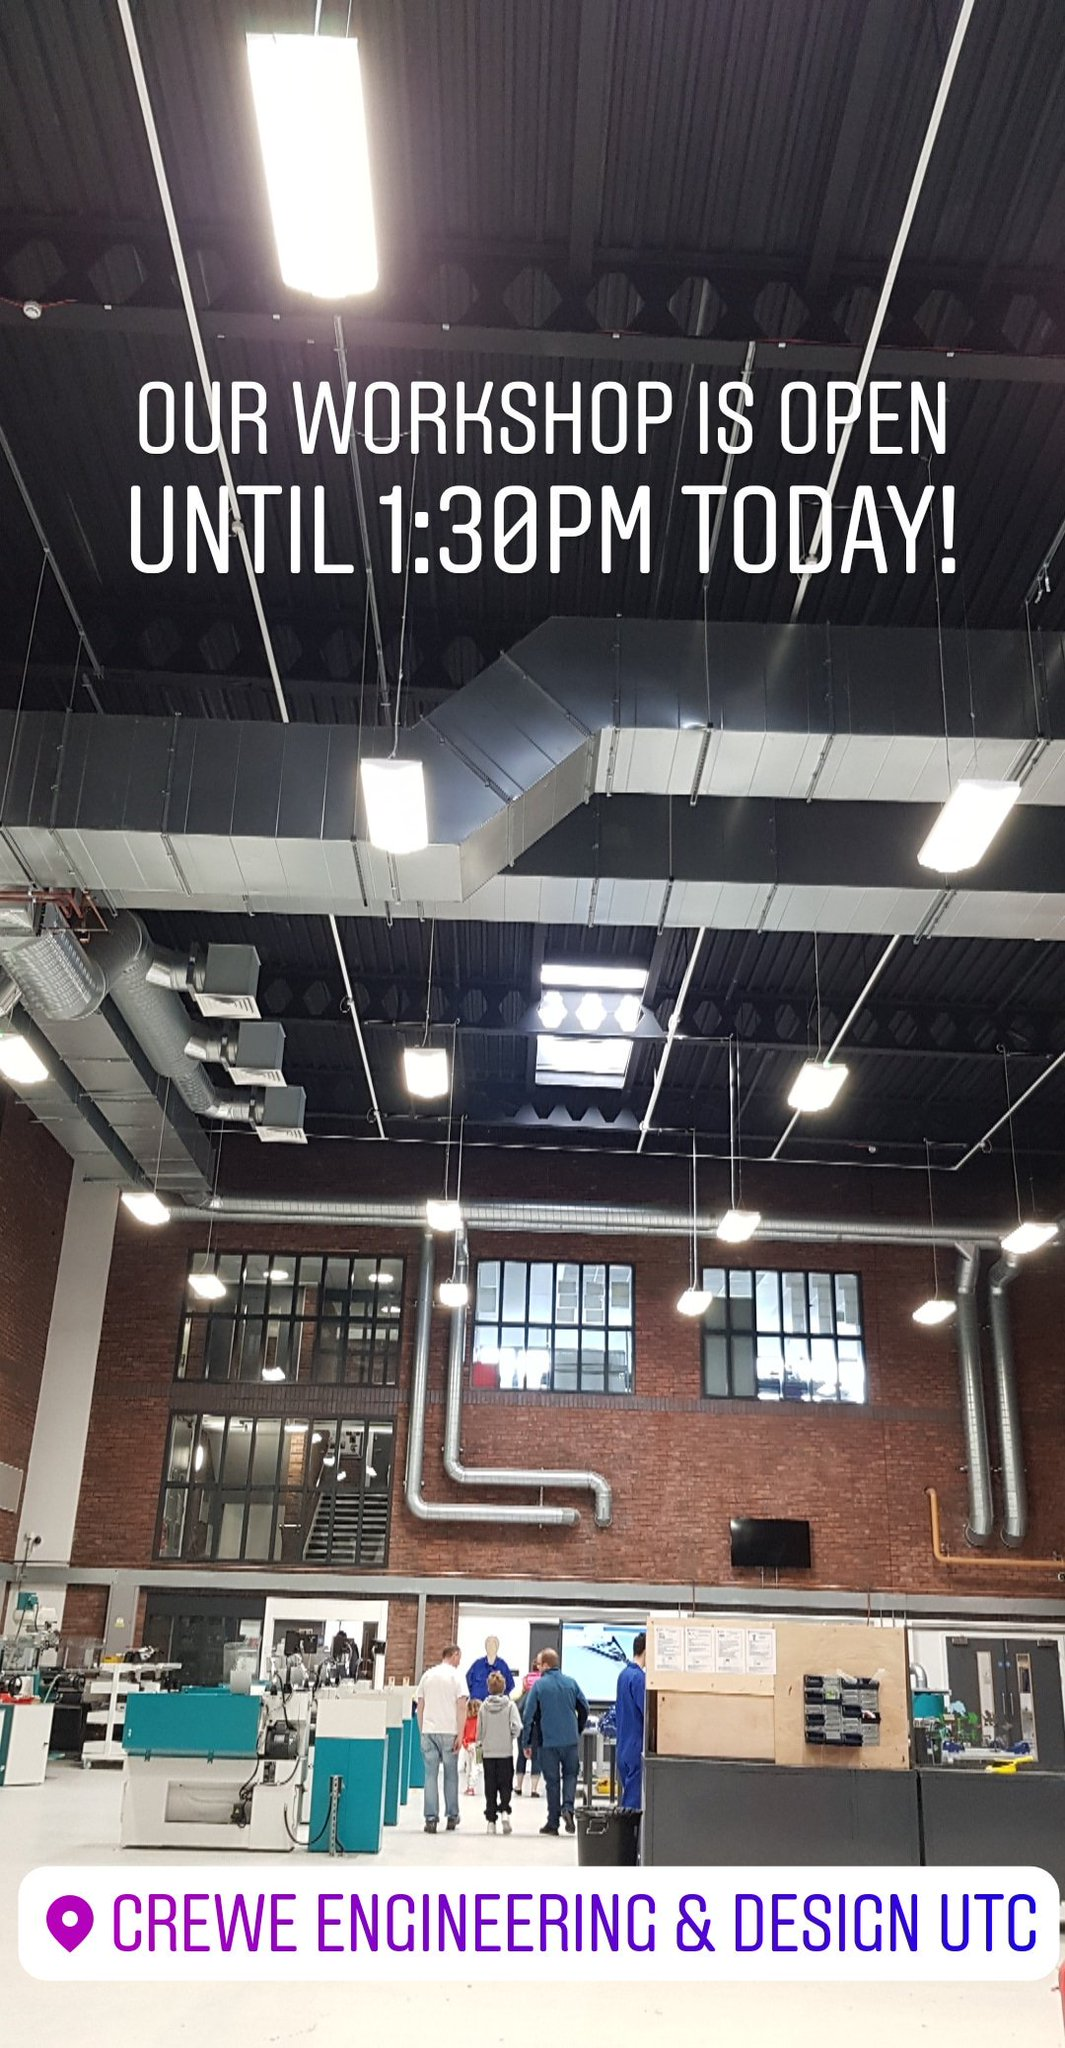 Crewe E D Utc On Twitter We Are Open Until 1 30pm Today For Visitors To Tour Our Workshop And Check Out Some Of The Work Our Students Have Been Doing Https T Co Haw3exvitn